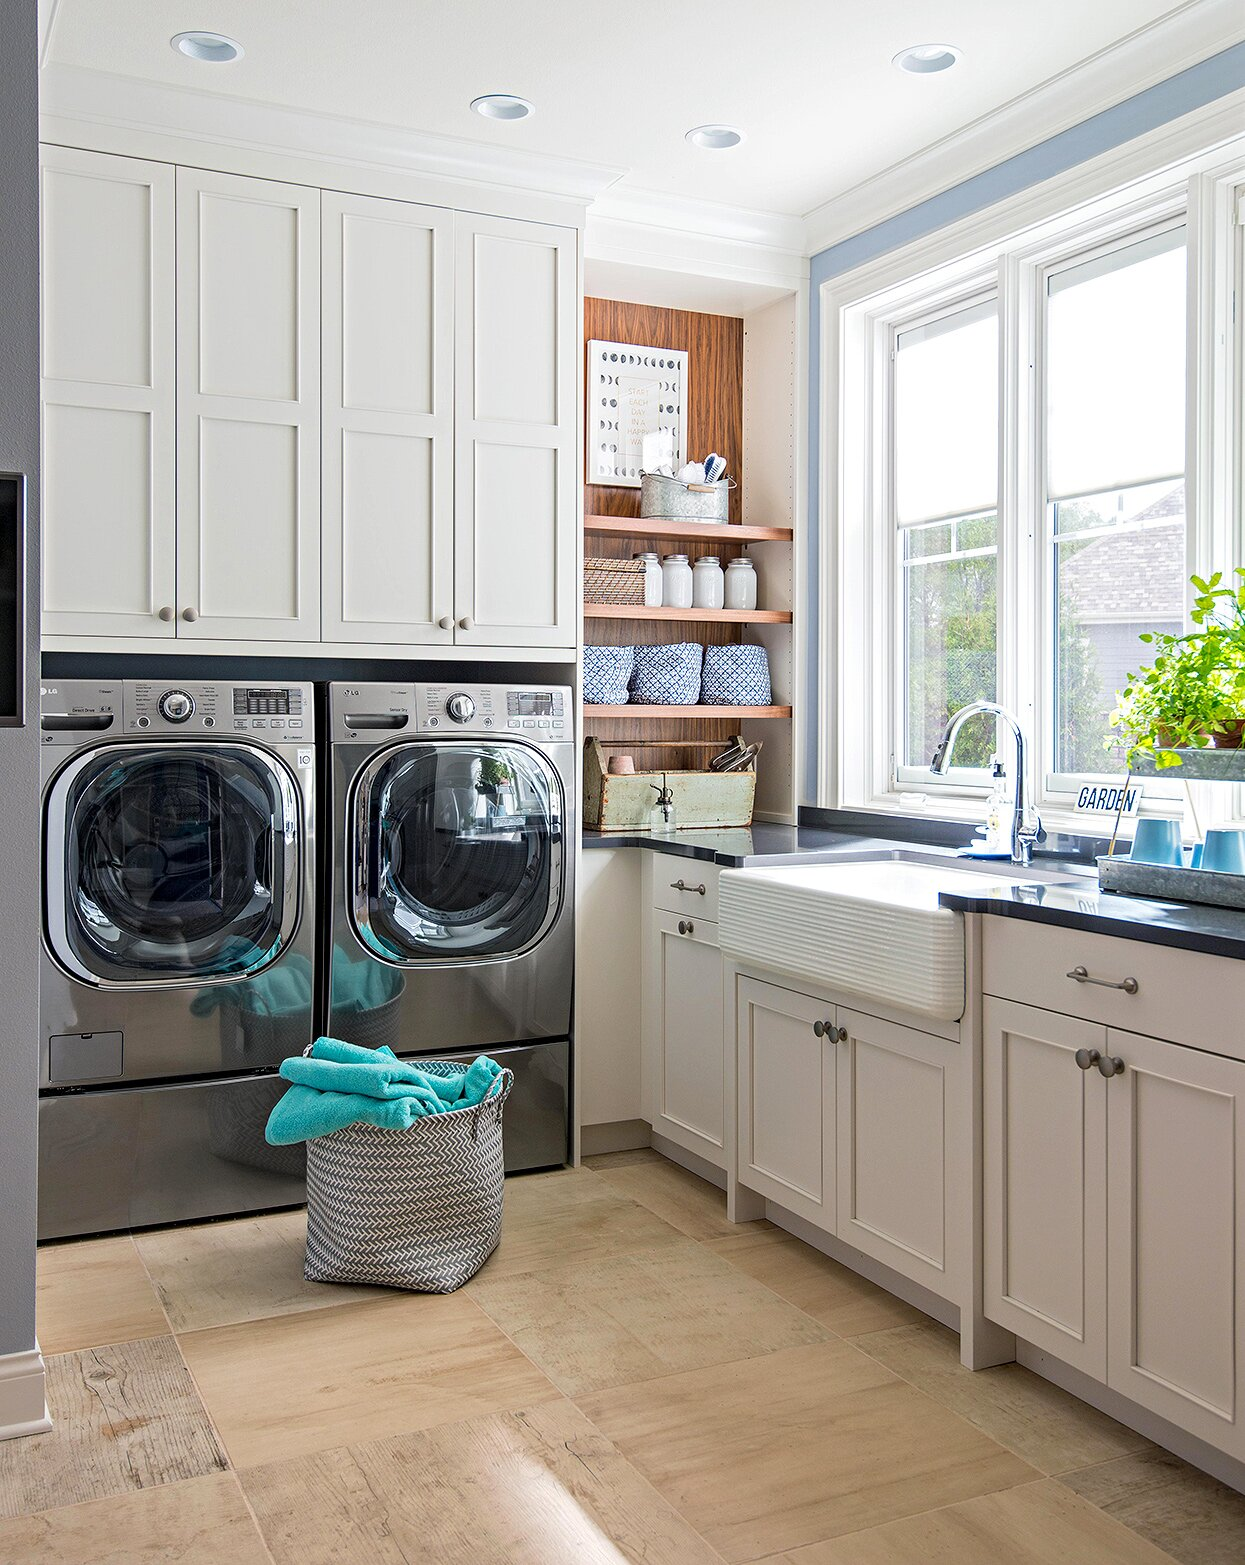 How To Properly Load A Washing Machine Better Homes Gardens